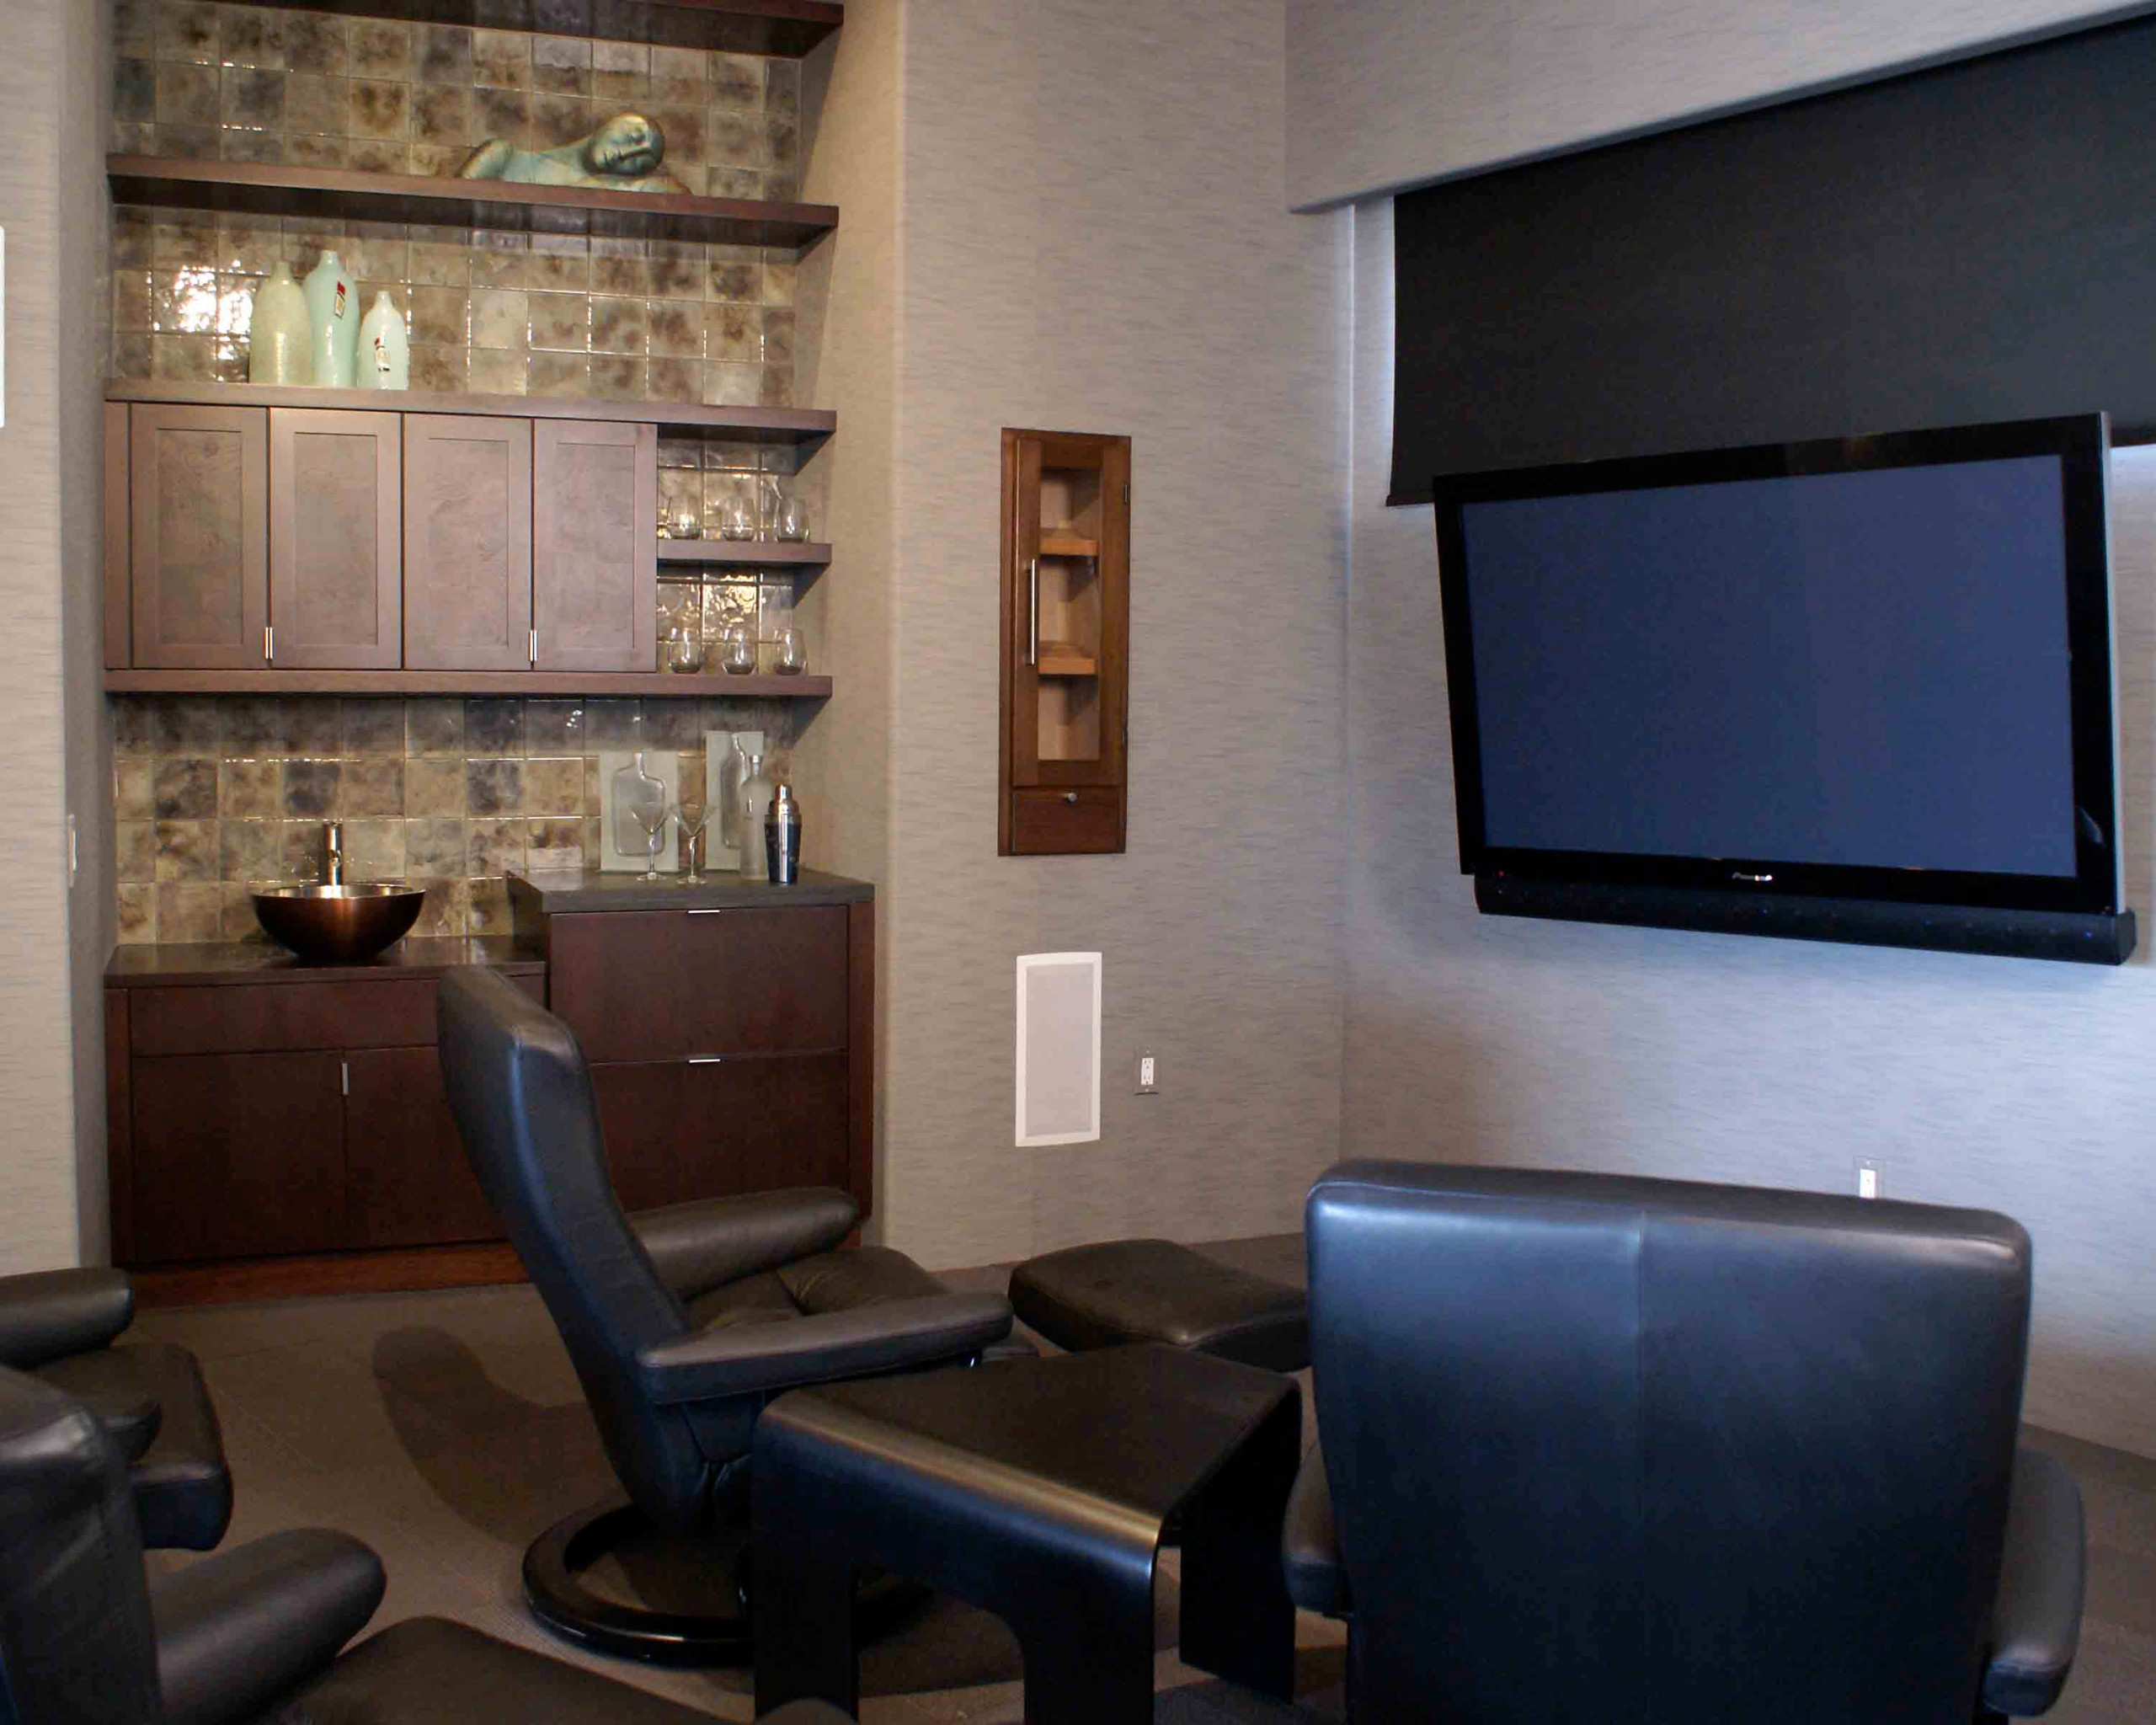 Home Theatre / Wetbar